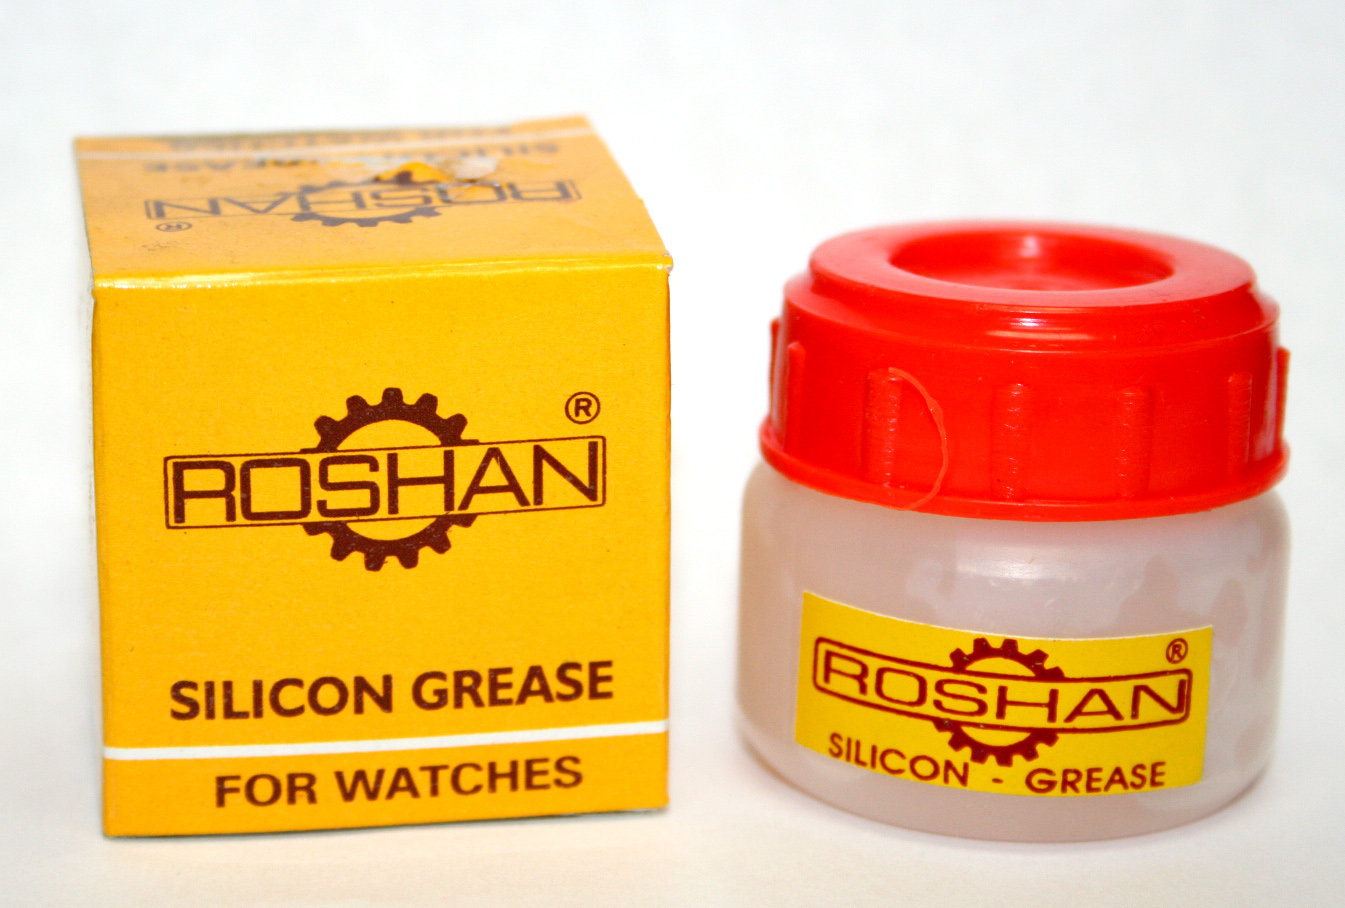 Roshan Silicon Grease for Watches